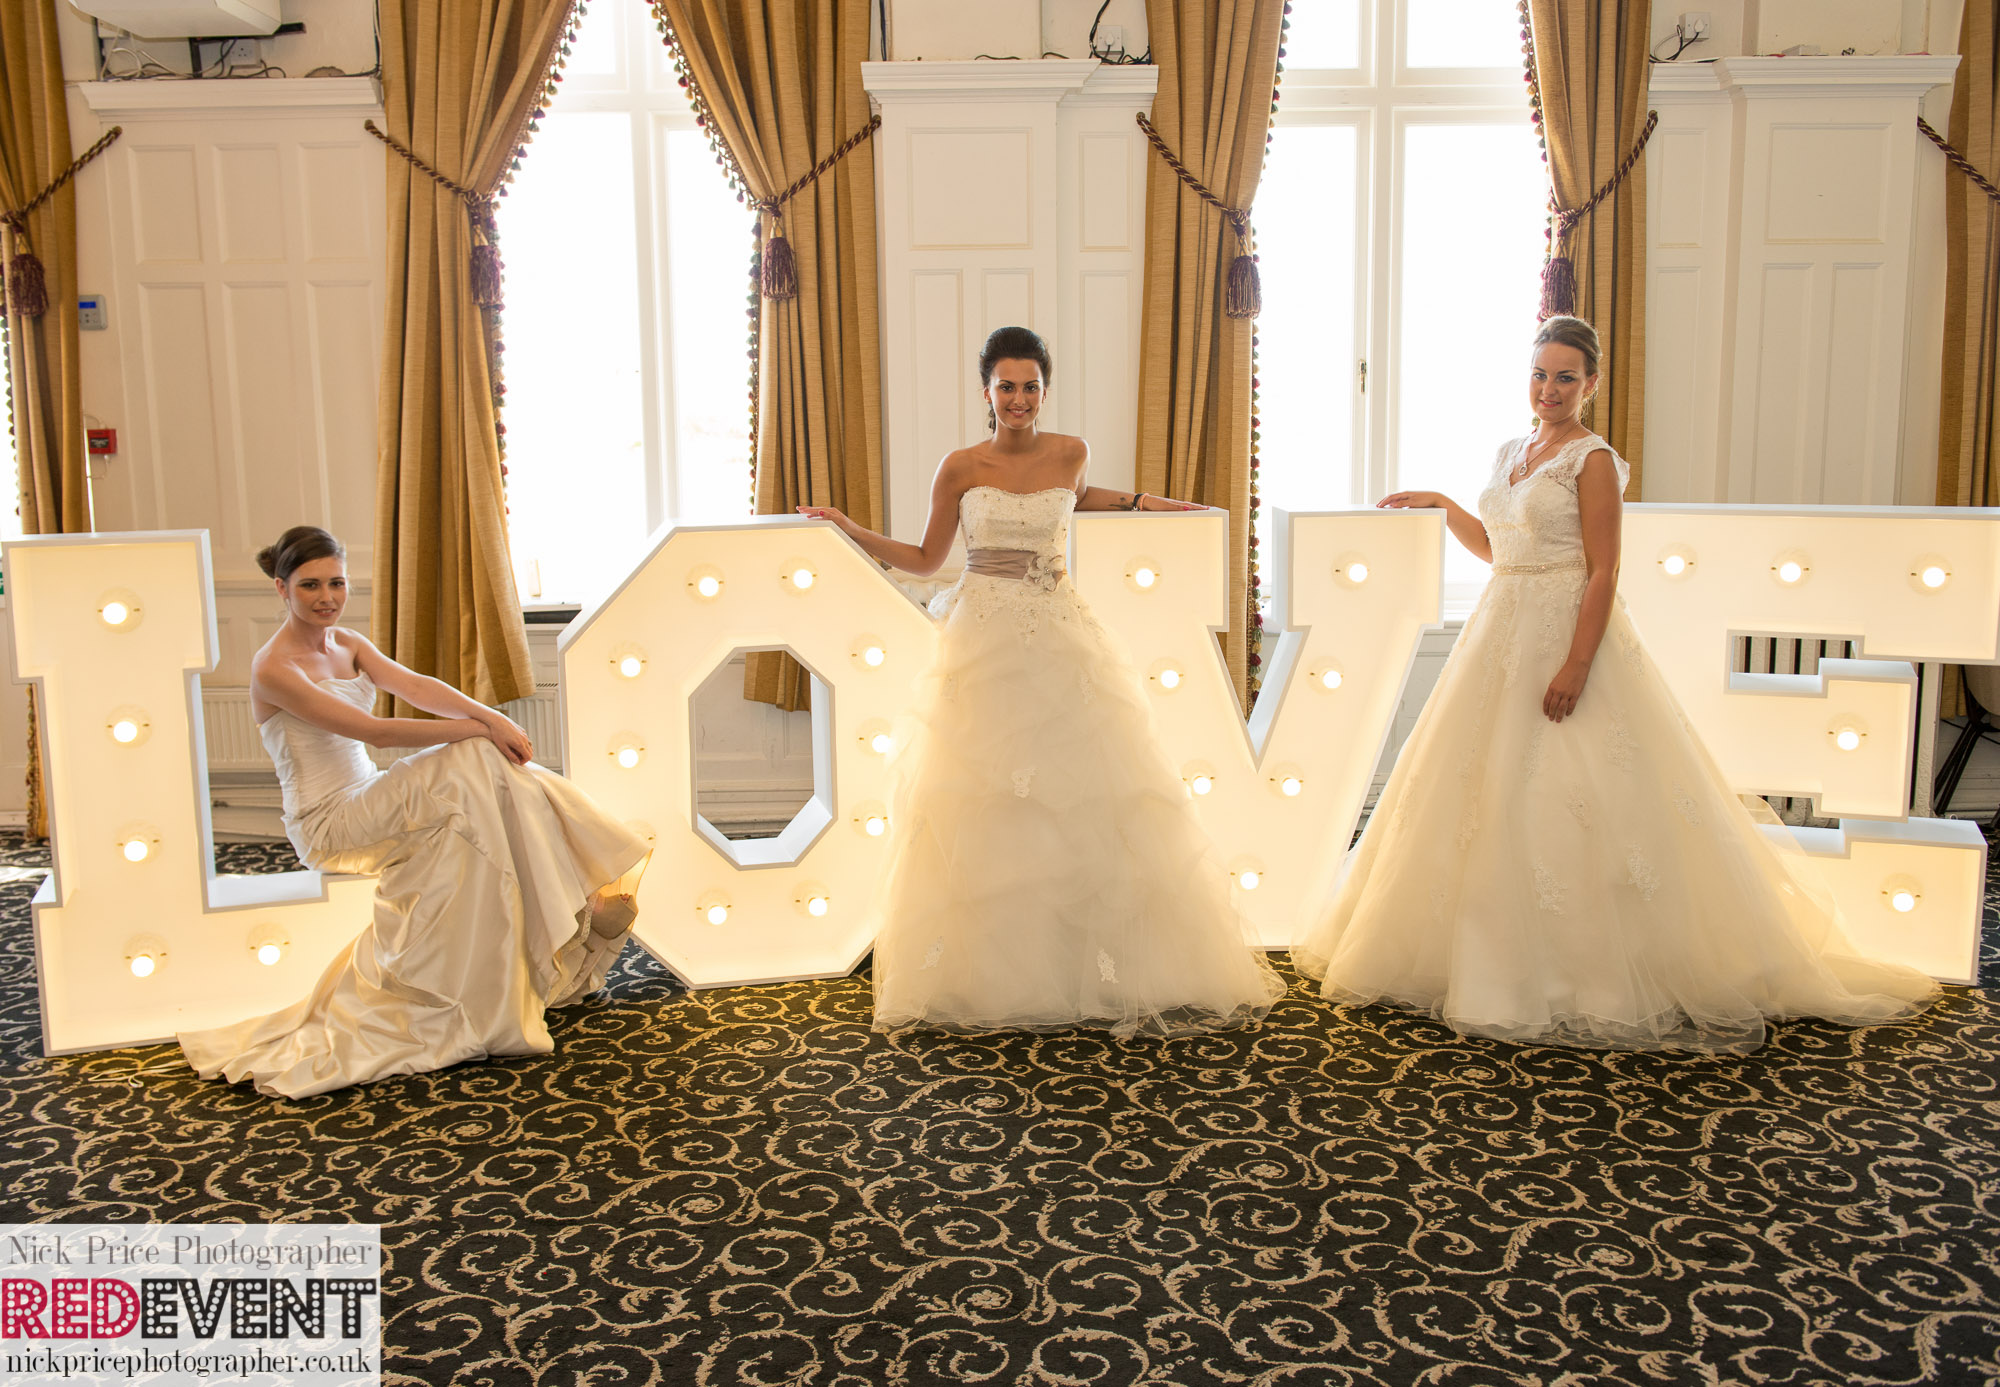 FB  TW Leasowe Castle Wedding Fayre, Wirral. Sunday 22nd June LOVE Letters RED EVENT-124